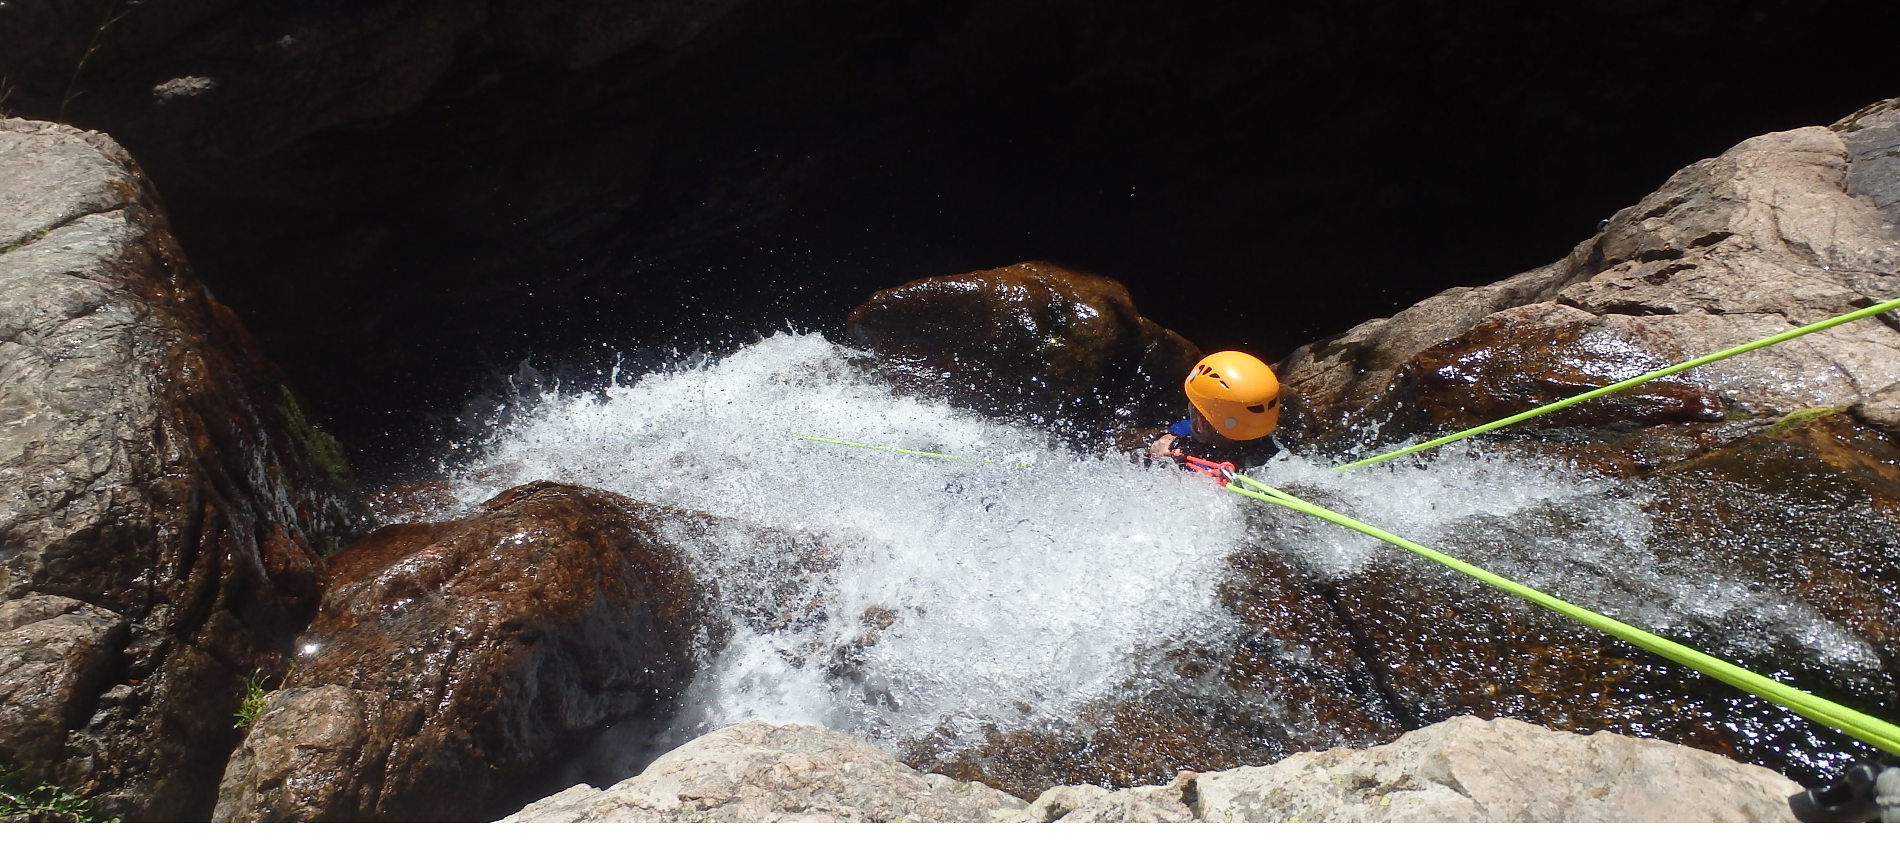 canyoning-cevennes-gard-herault-montpellier